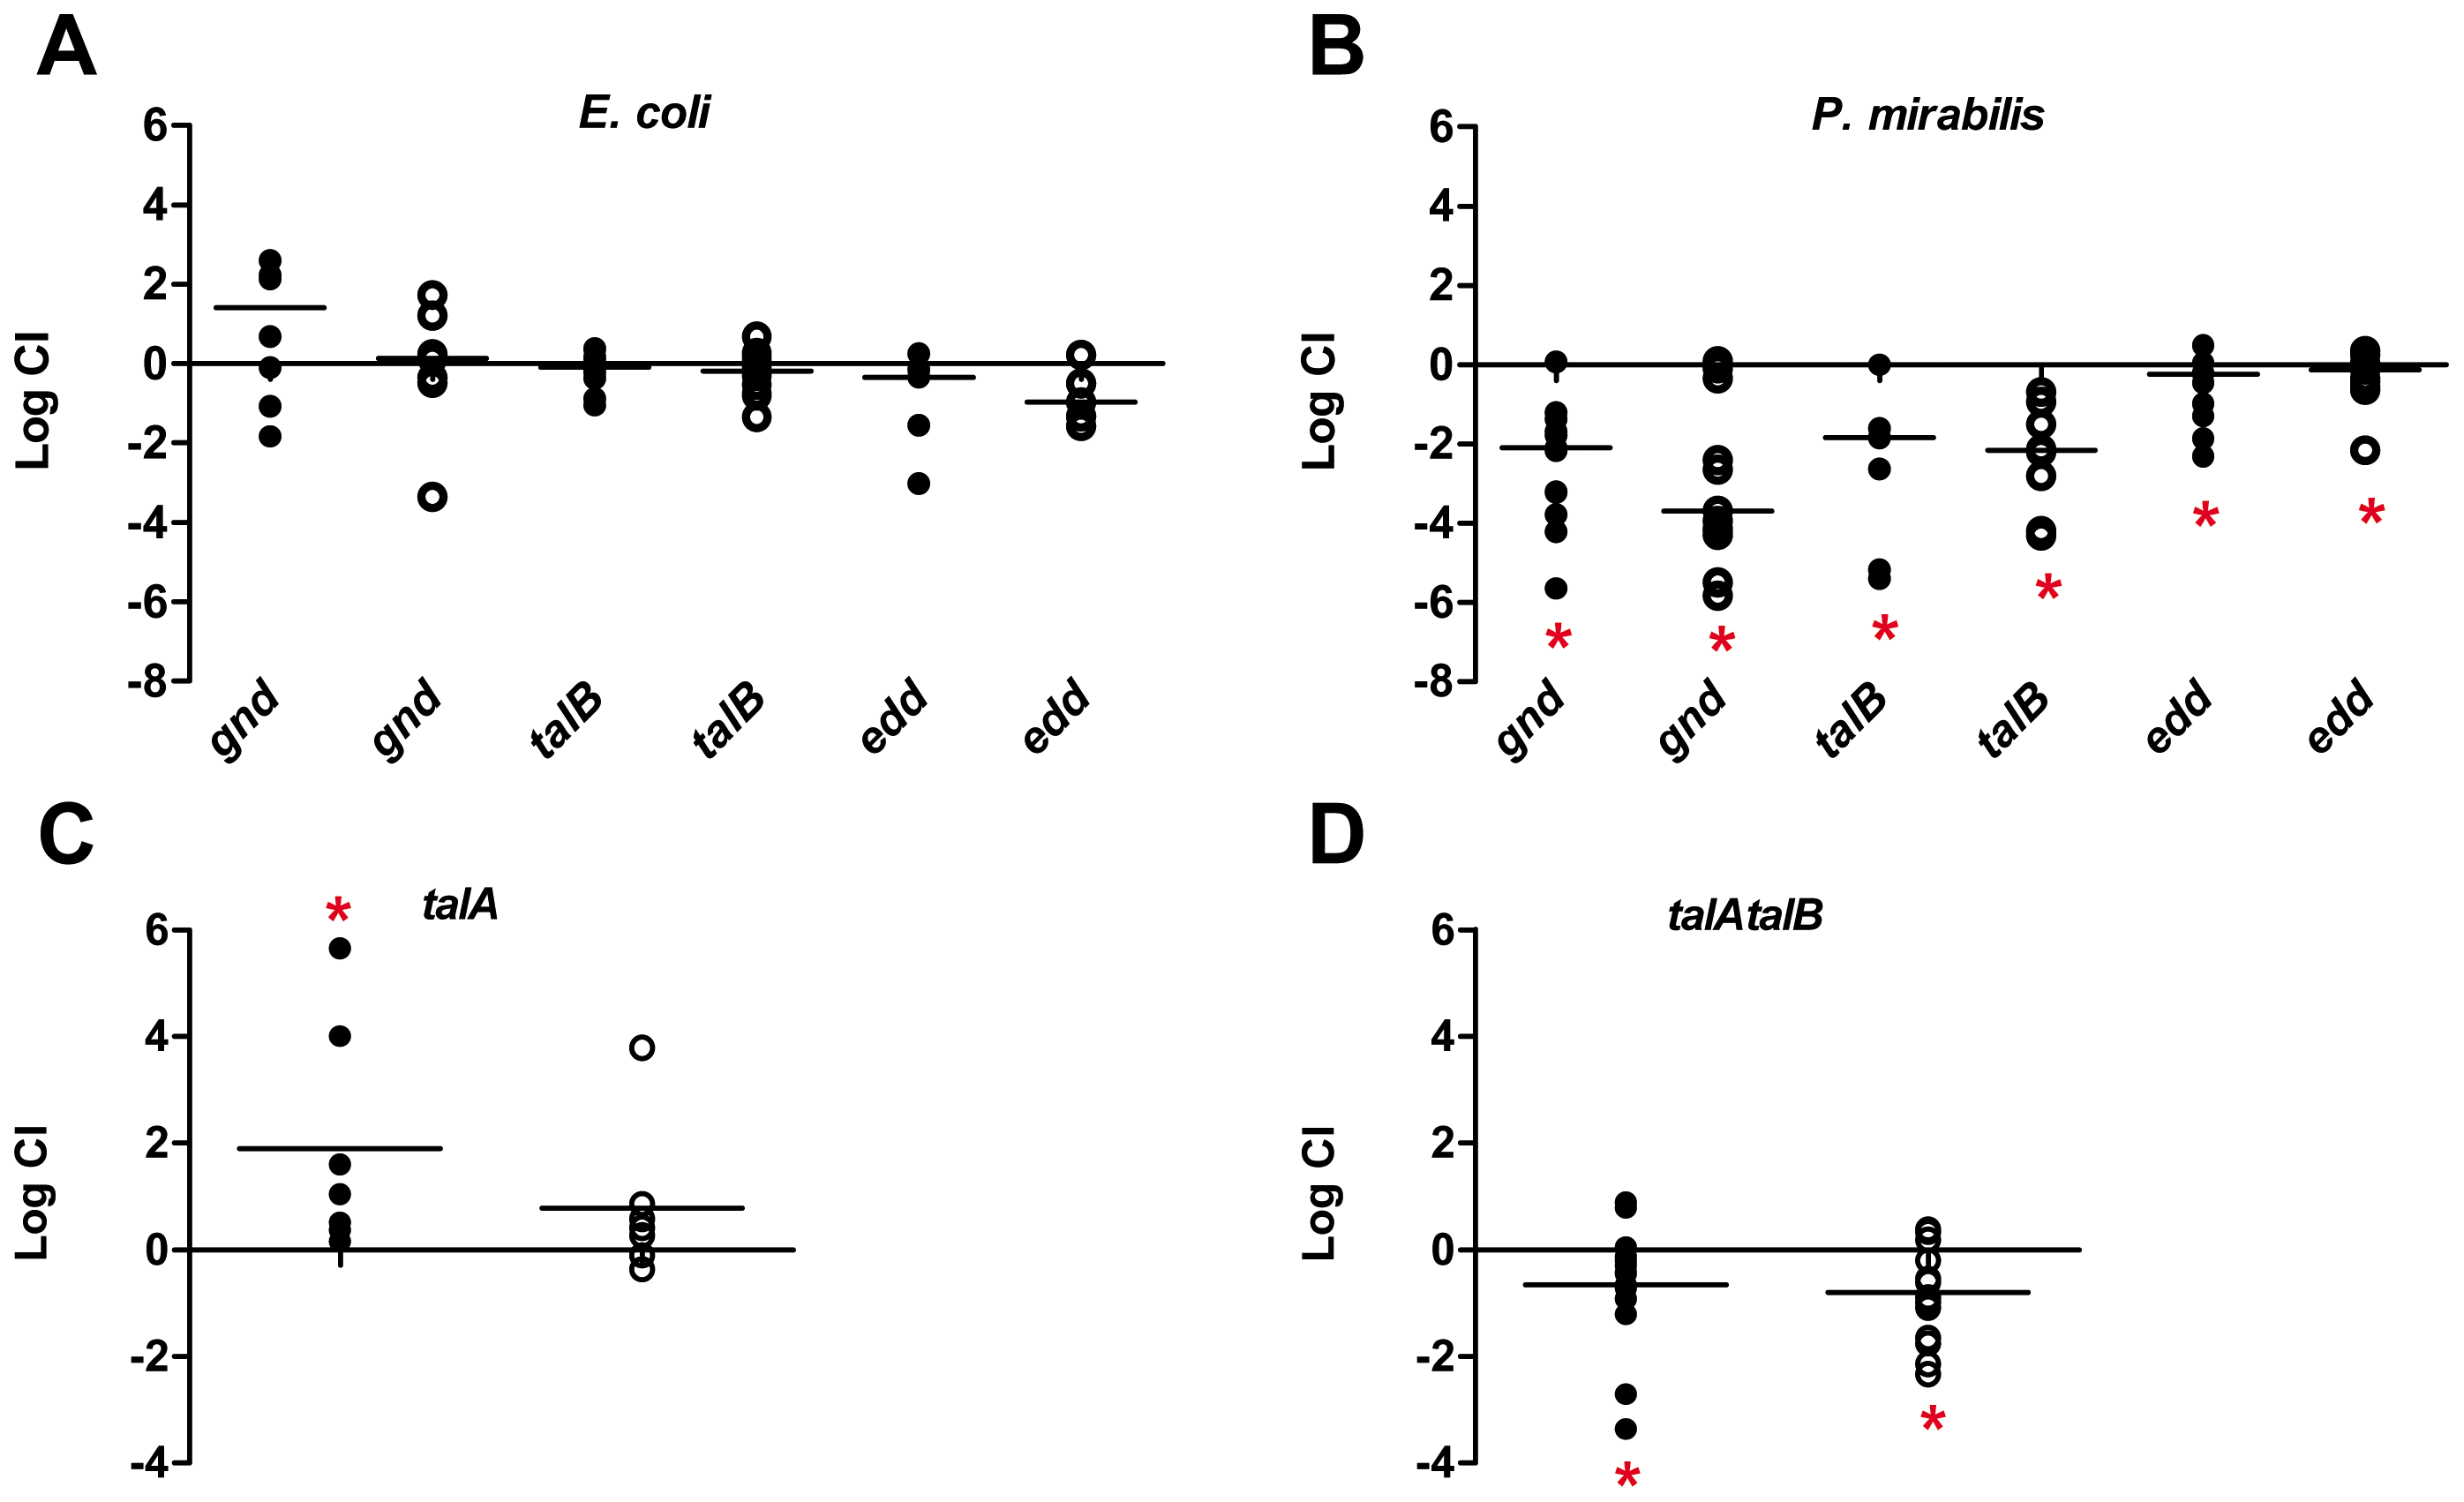 <i>In vivo</i> role for the pentose phosphate pathway and the Entner-Doudoroff pathway for pathogen colonization of the urinary tract.